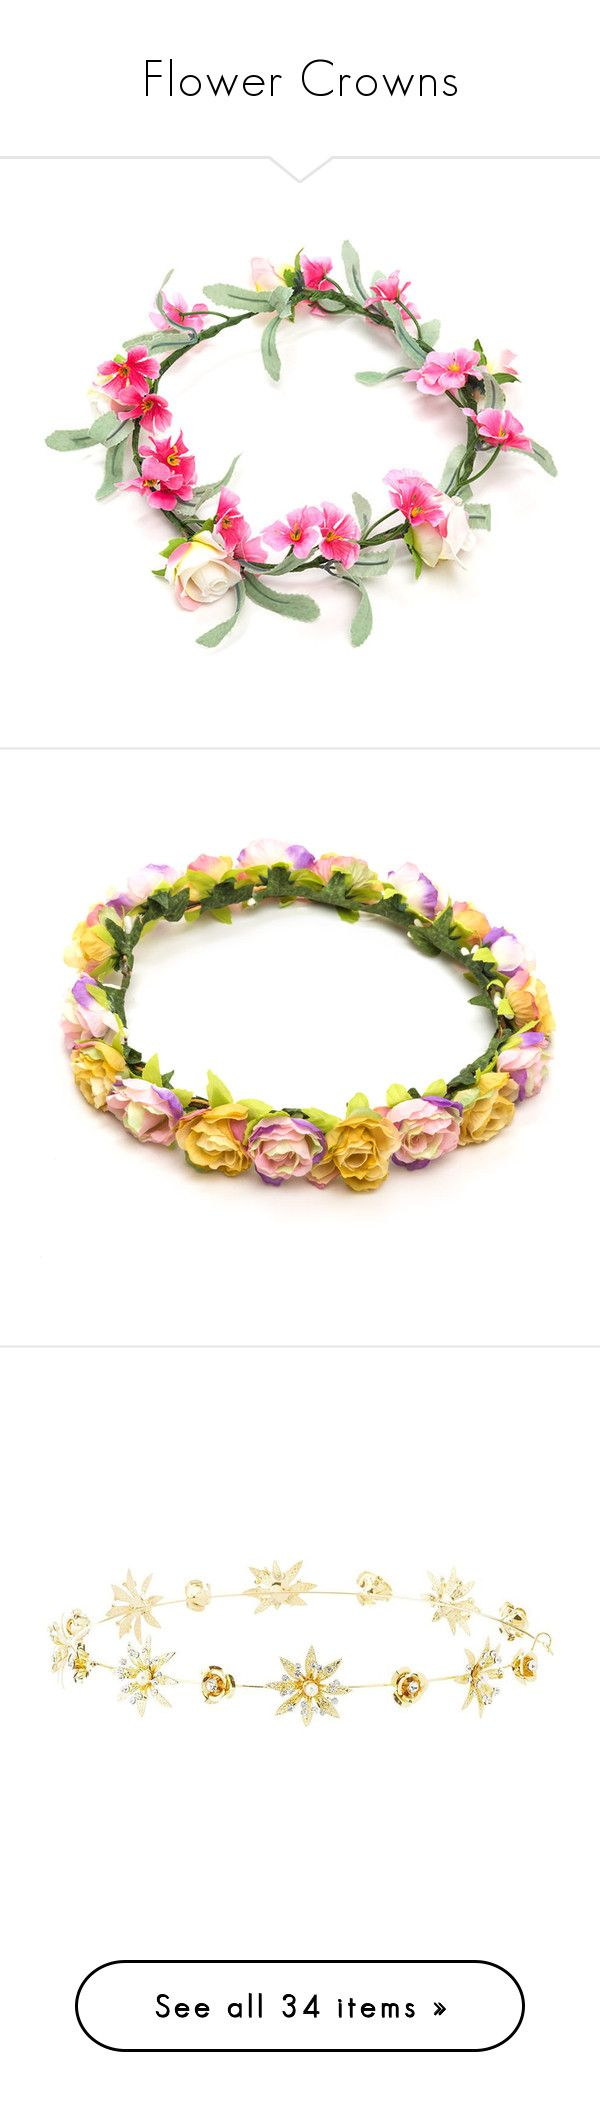 """Flower Crowns"" by amyjamesdevine ❤ liked on Polyvore featuring accessories, hair accessories, flower crown, headbands, hats, hair, multi, artificial garland, flower crown headband and floral wreath headband"